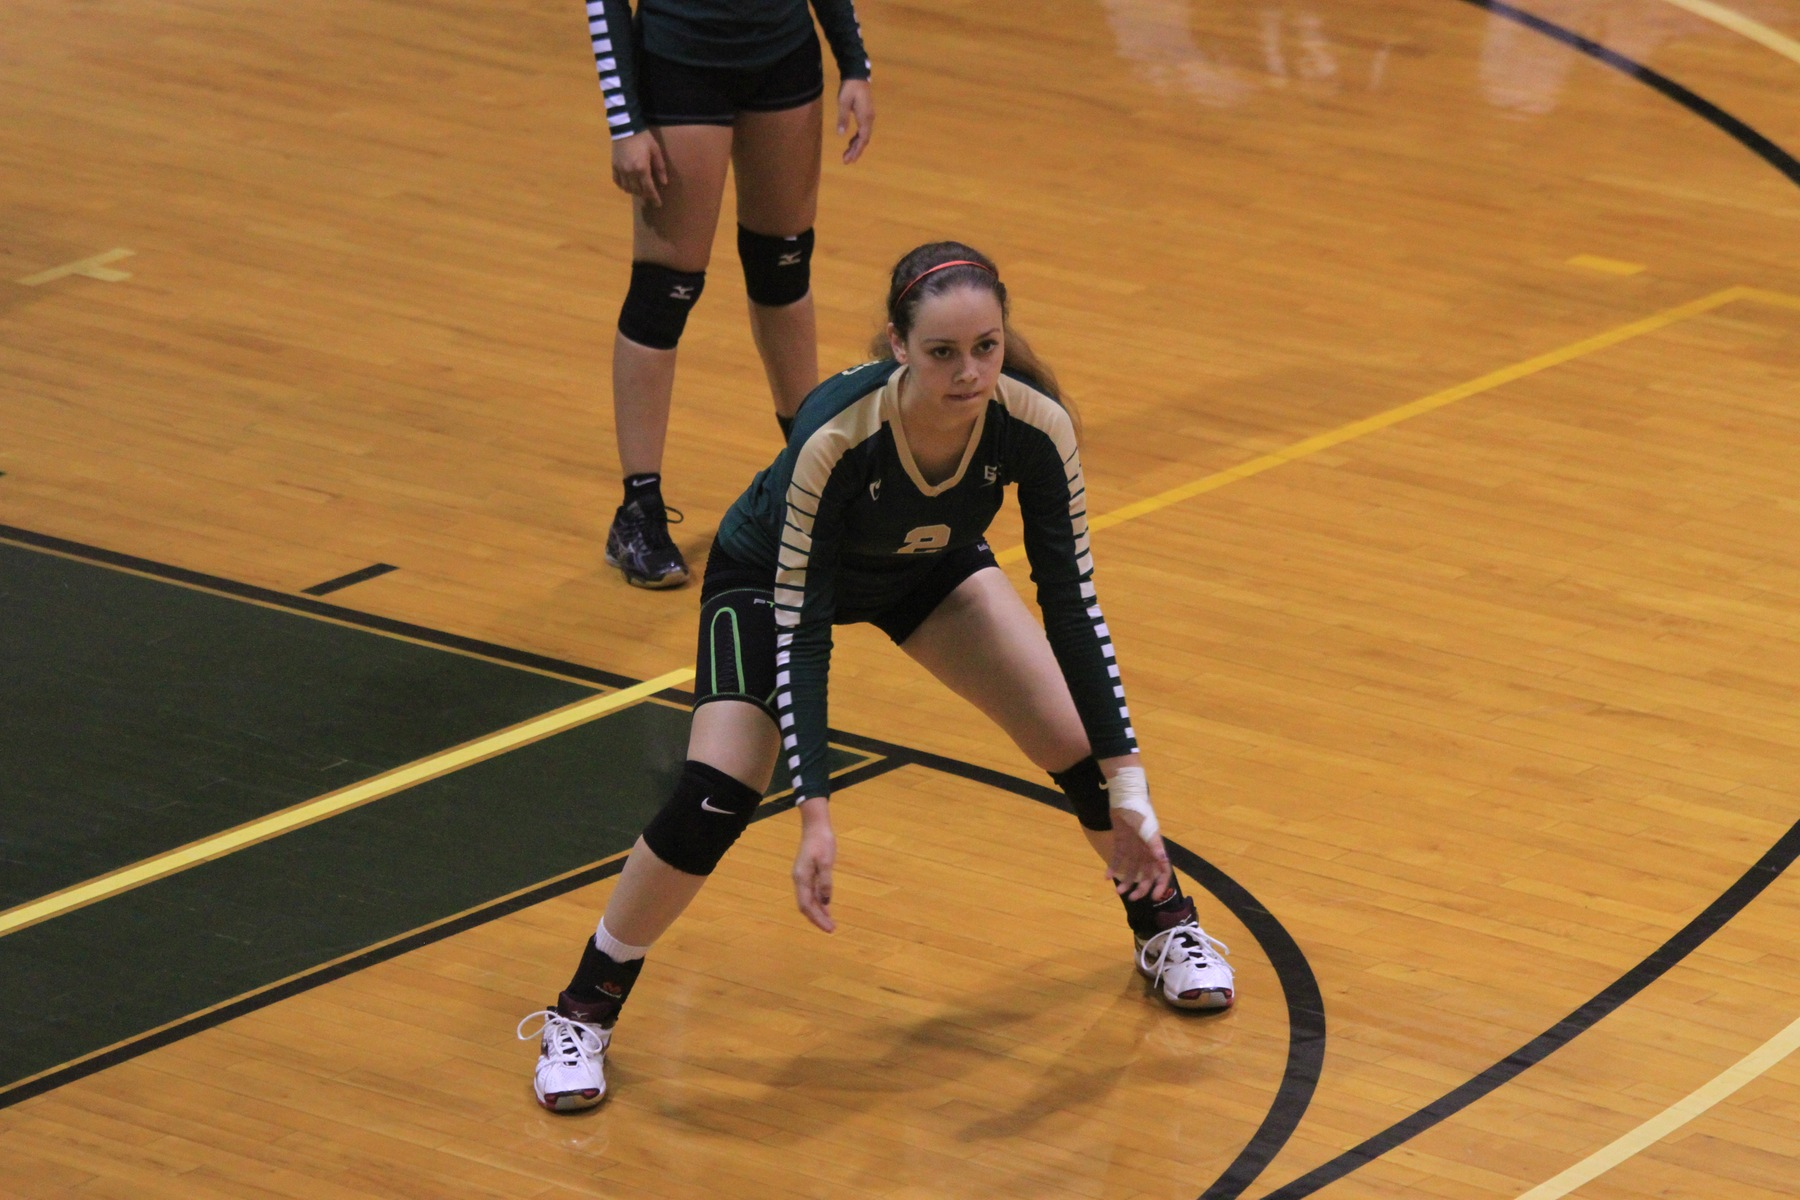 Women's Volleyball Sweeps Past Lancers